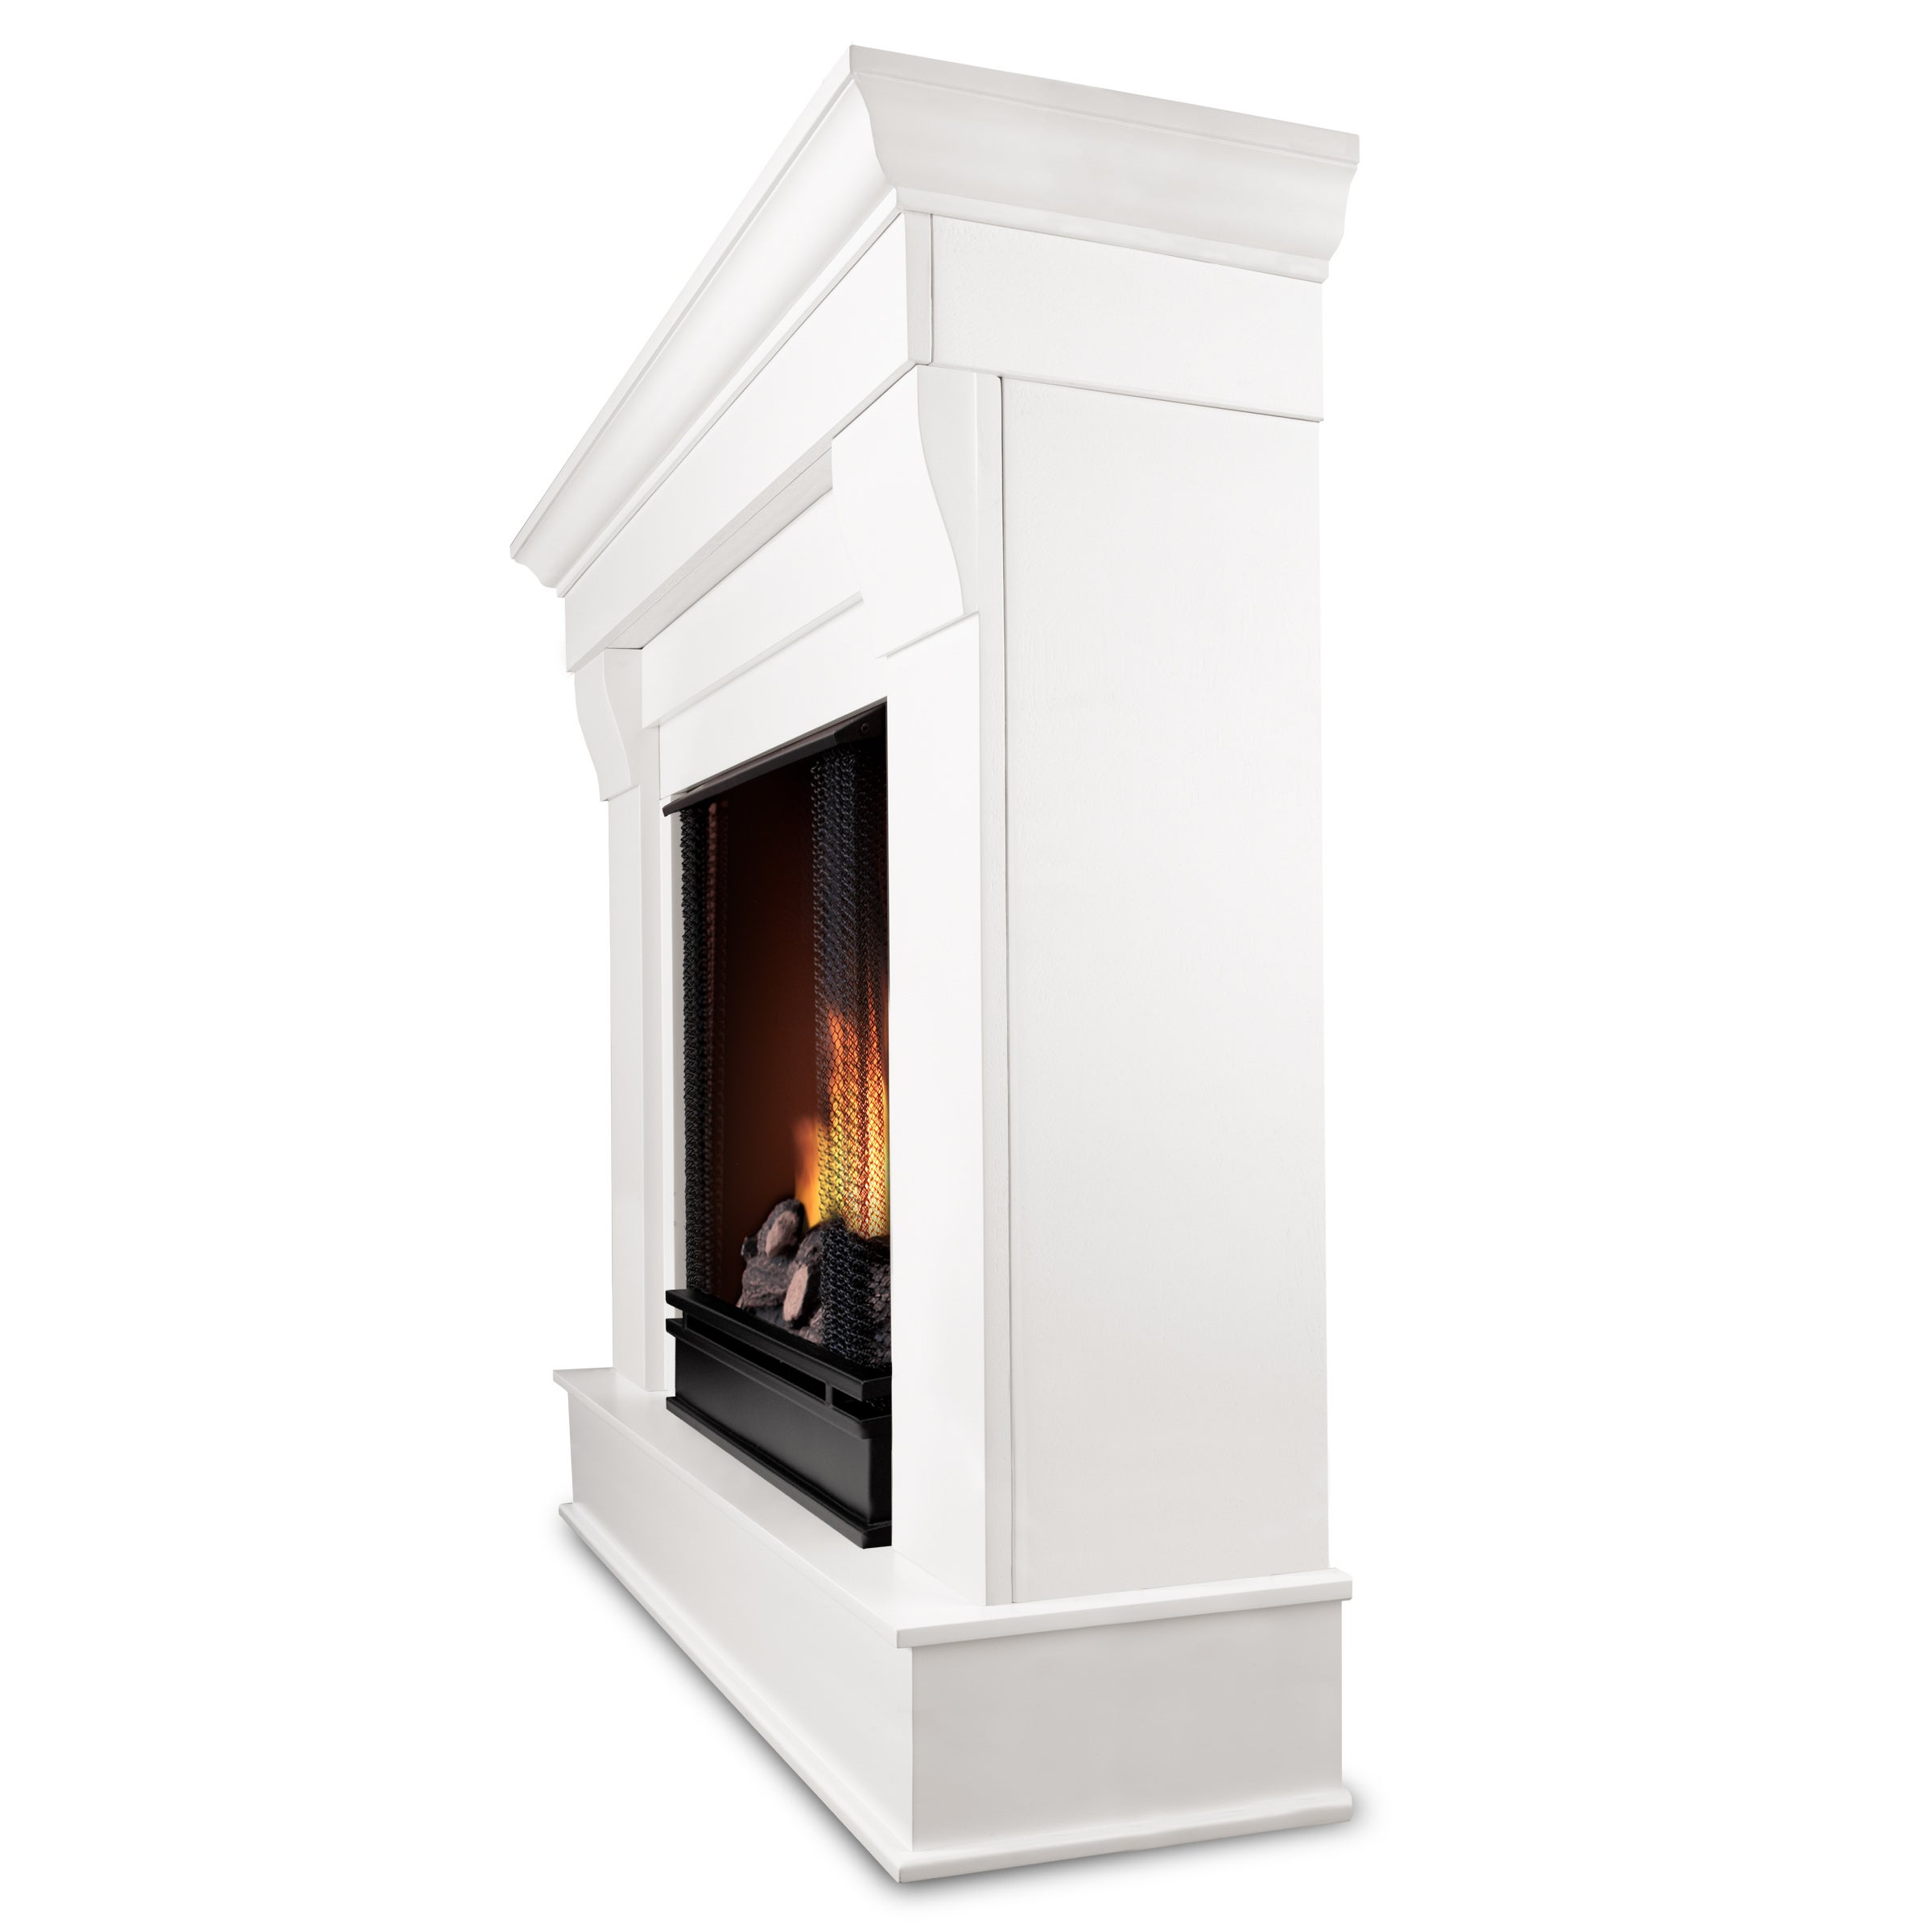 fireplaces david bio a project for fireplace traditional cast ltd old fires gel insert fire with iron content fuel burner